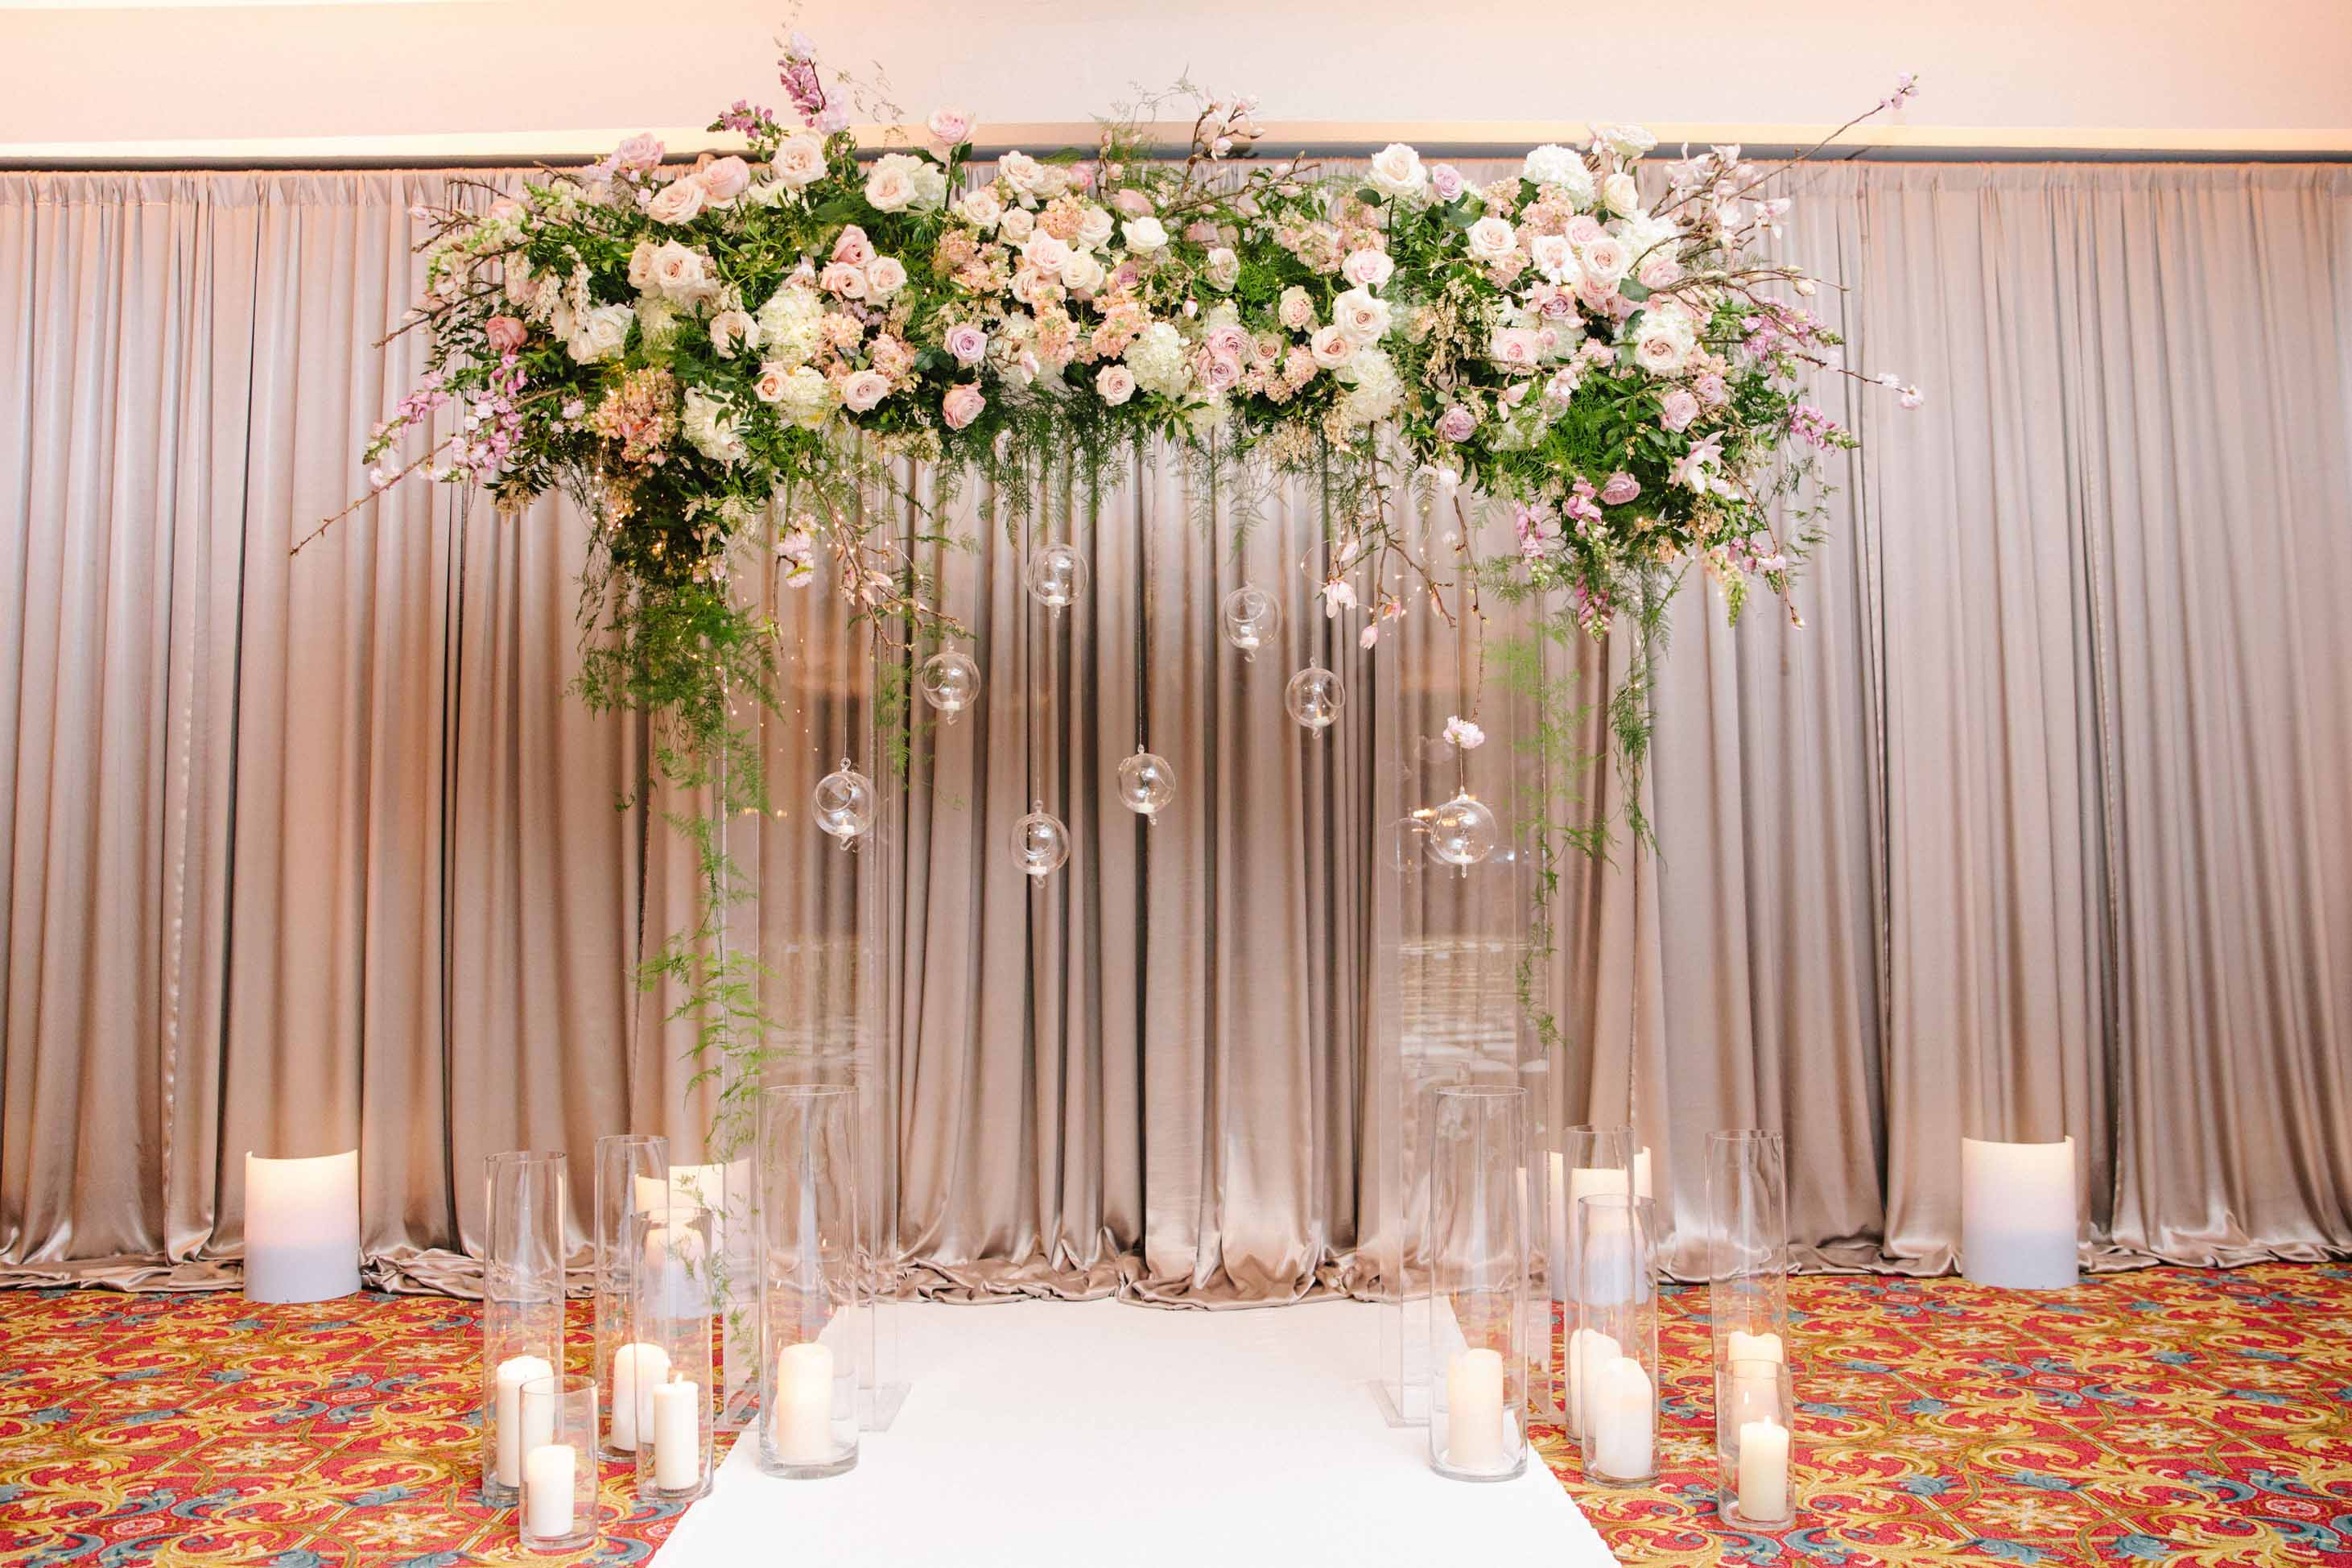 Wedding ceremony arch with flowers, vines, and hanging candles, surrounded by large candles